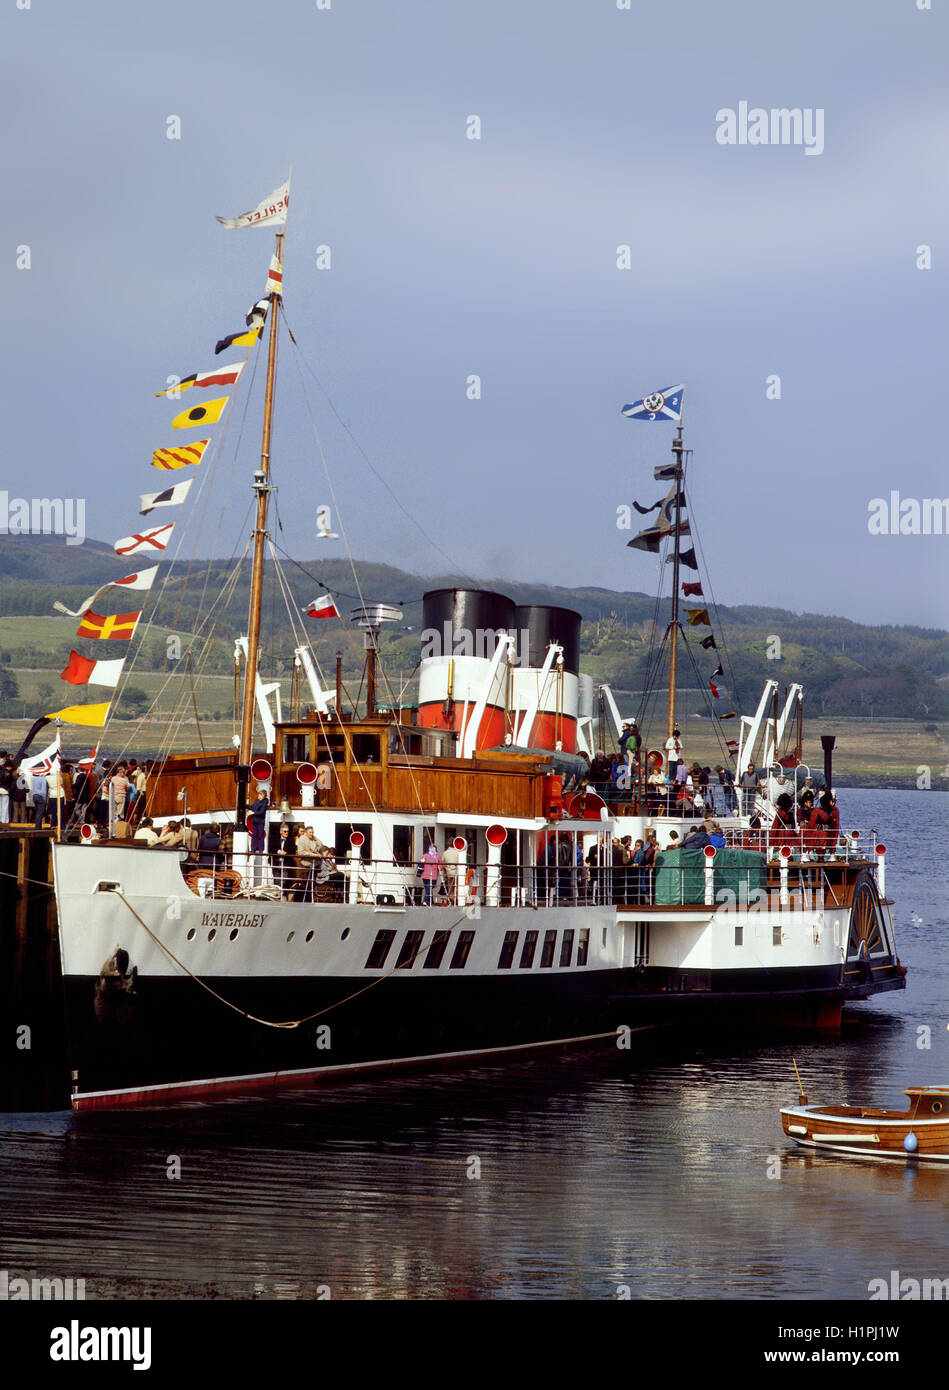 Waverley at Ardrishaig Pier,Argyll - Stock Image